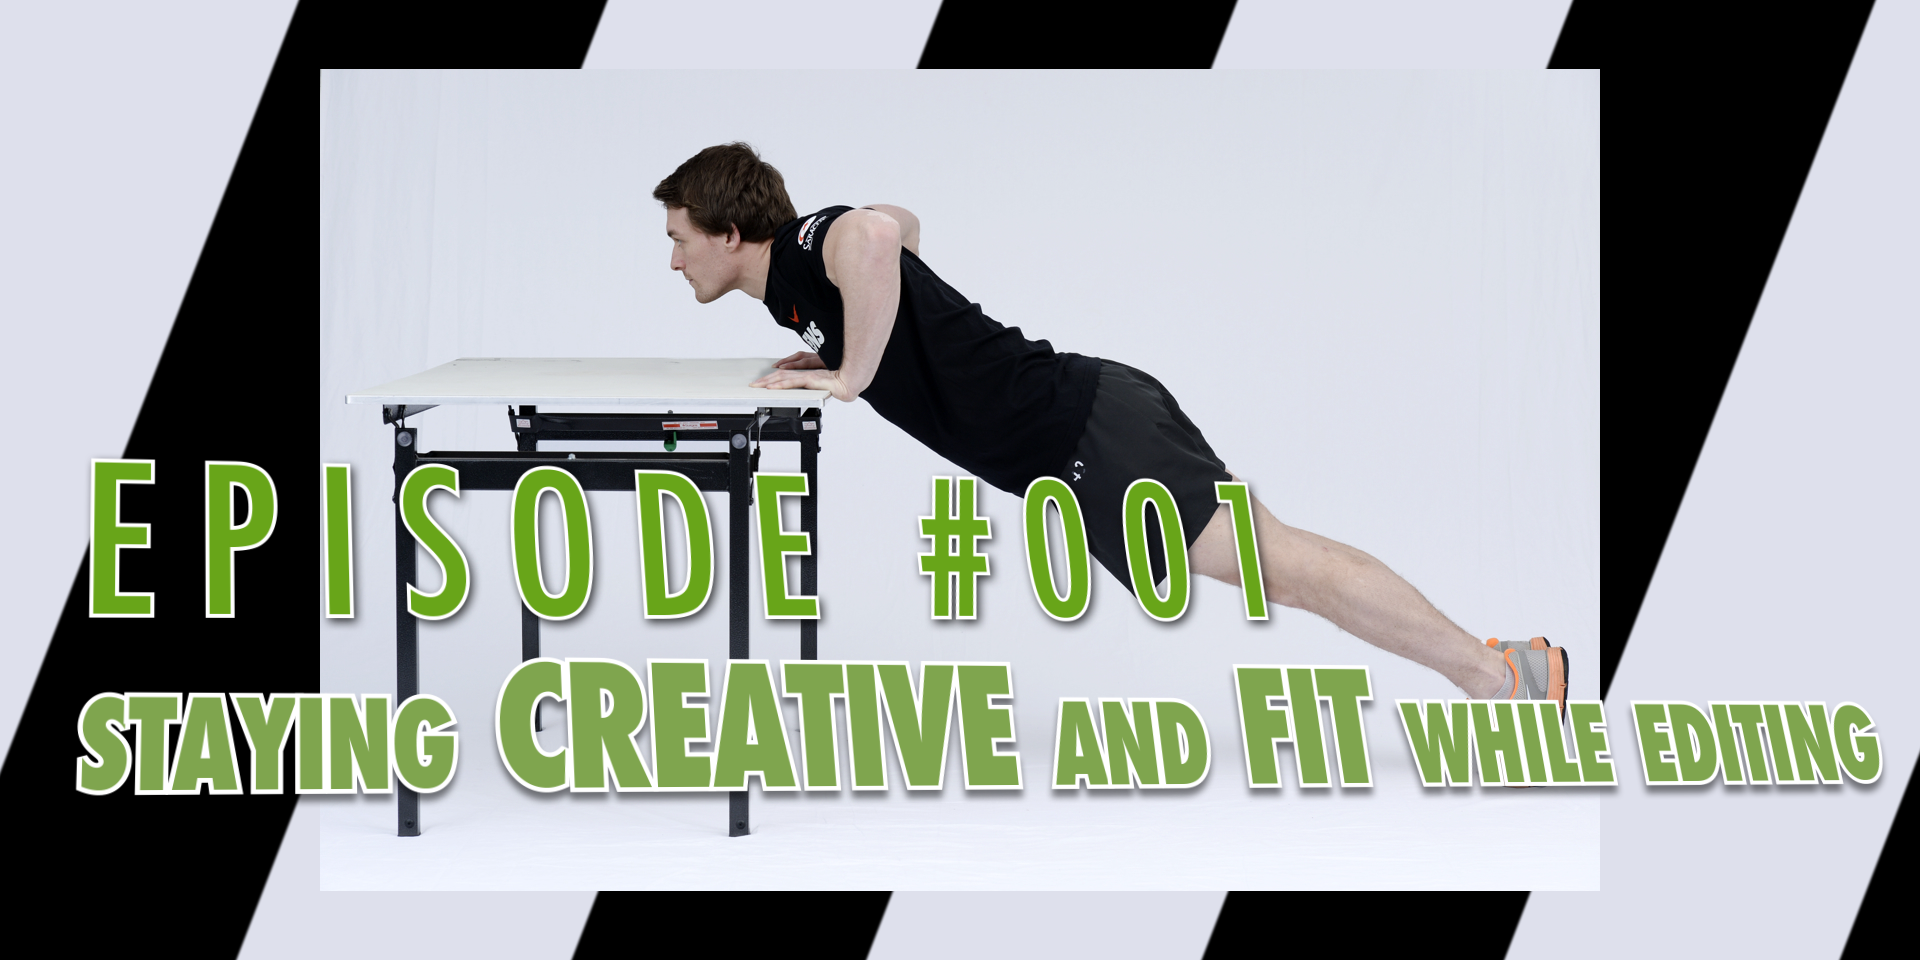 Episode 001: Staying CREATIVE and FIT while editing